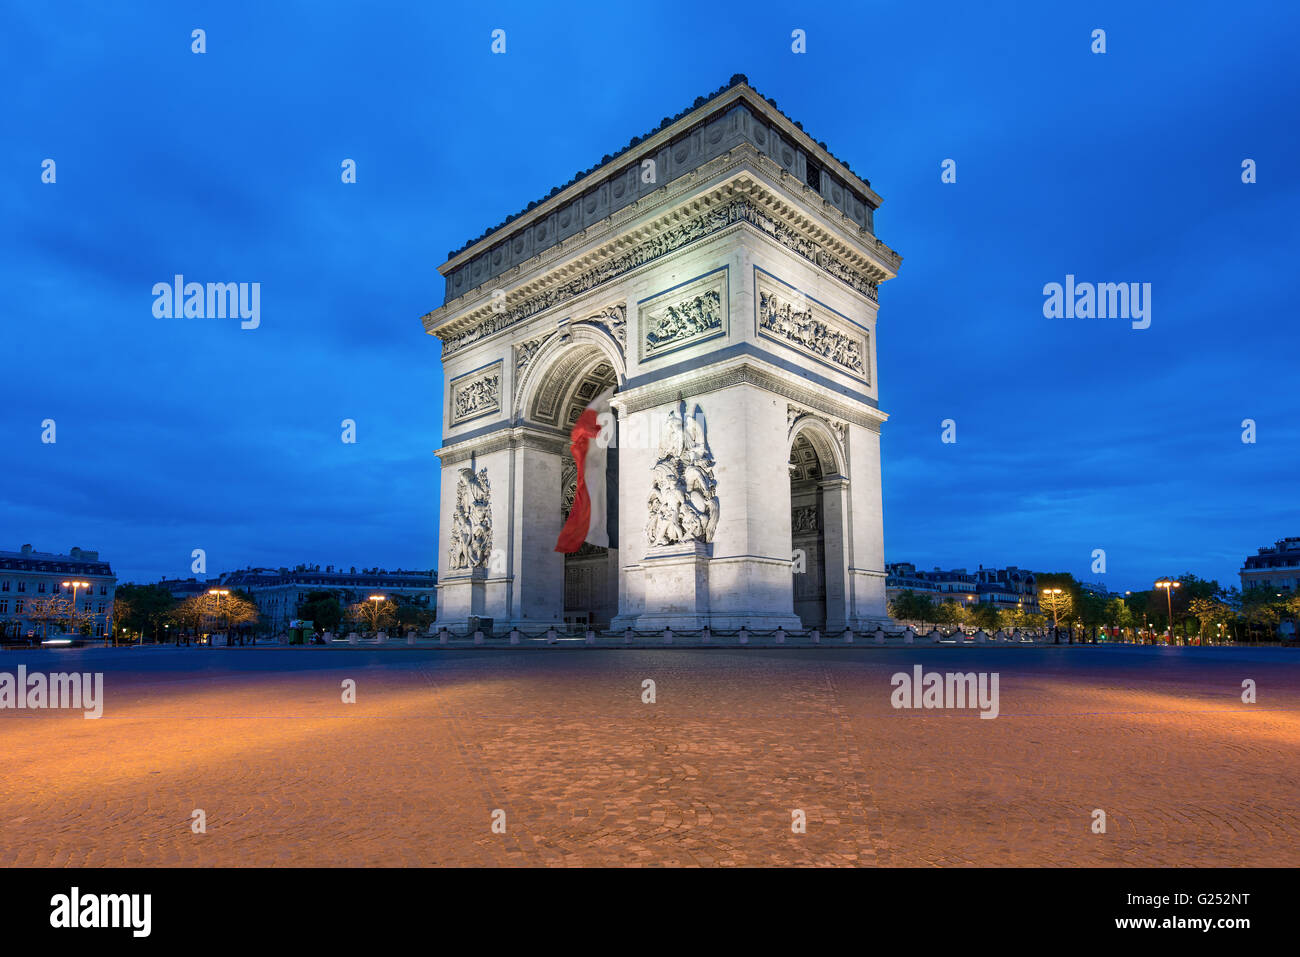 Arc de Triomphe at sunset in Paris, France - Arch of Triumph - Stock Image